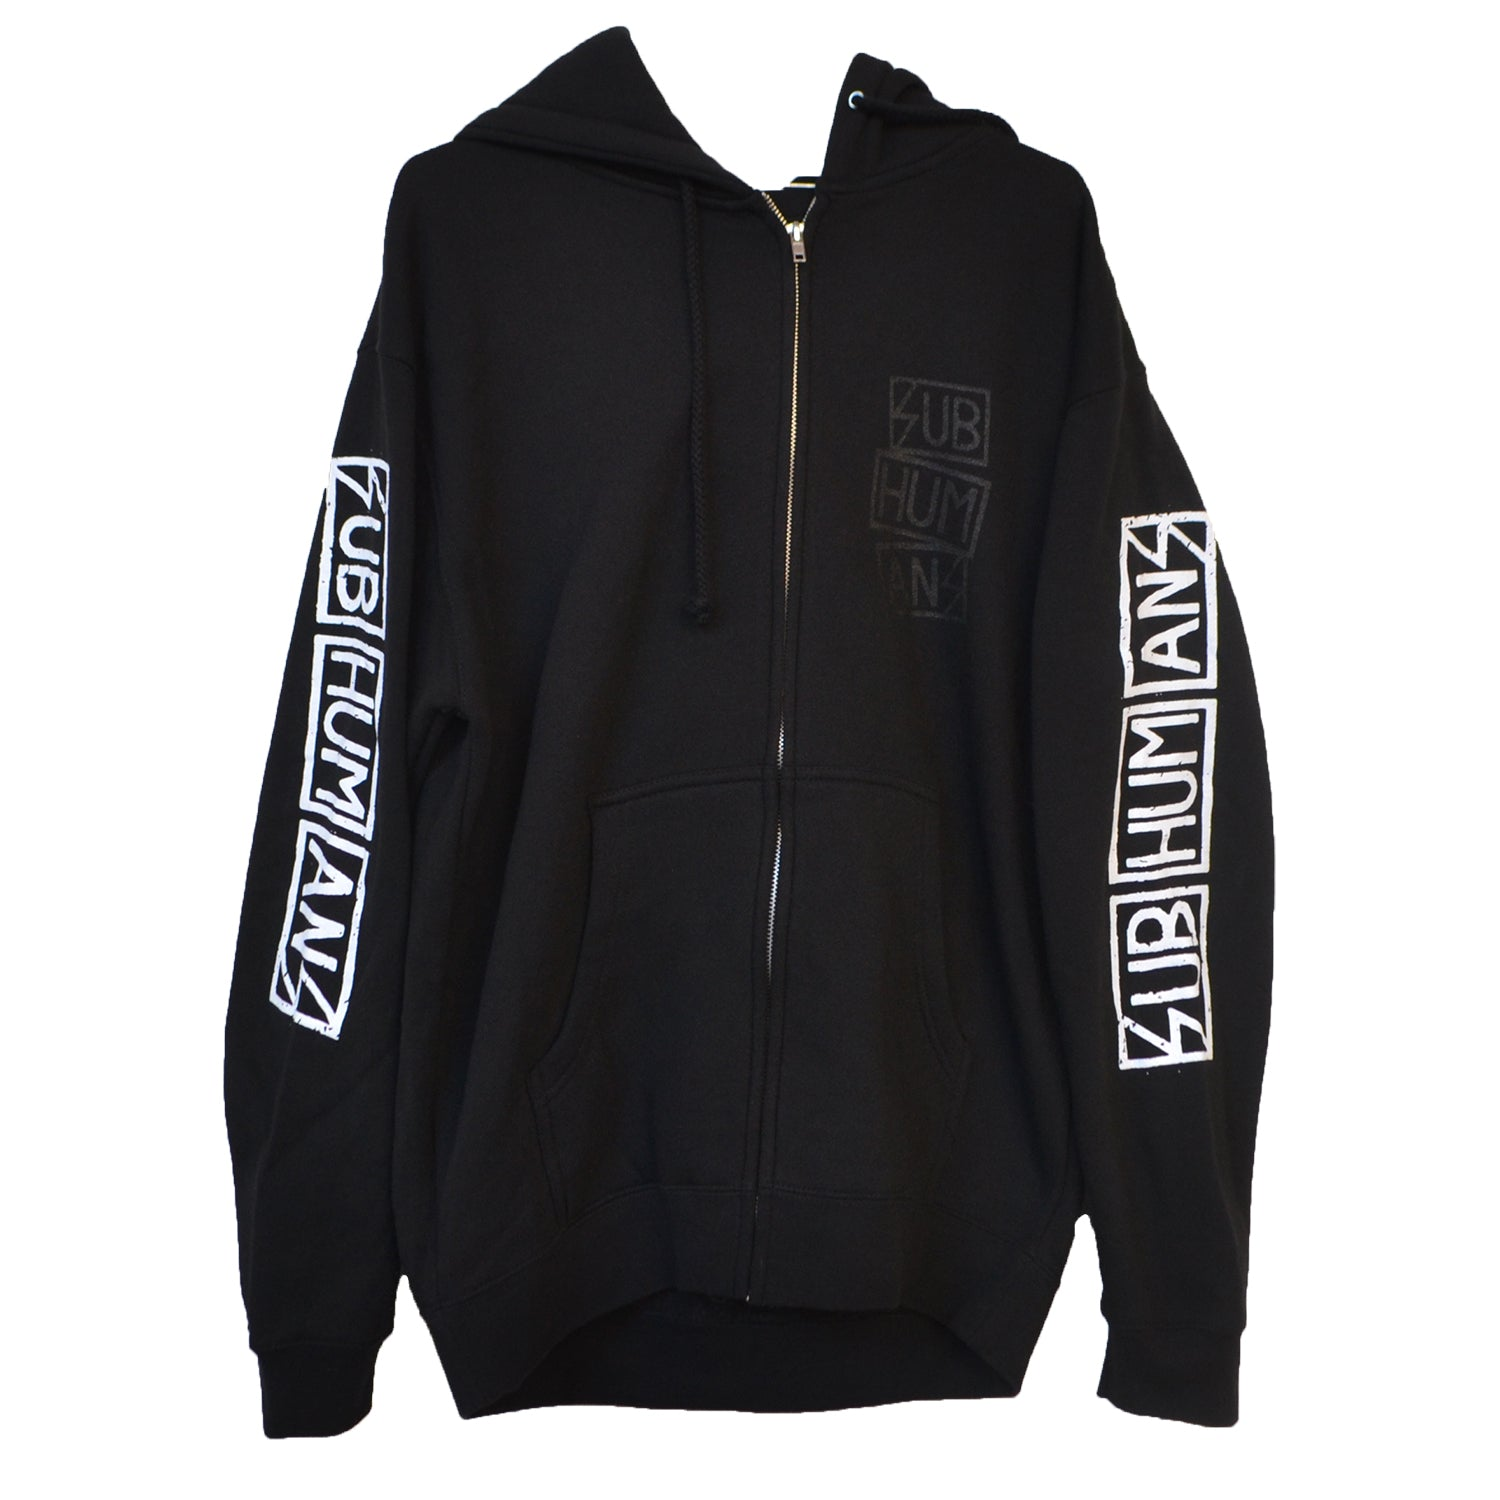 Subhumans - Skull Logo - Black - Zip-Up Hoodie